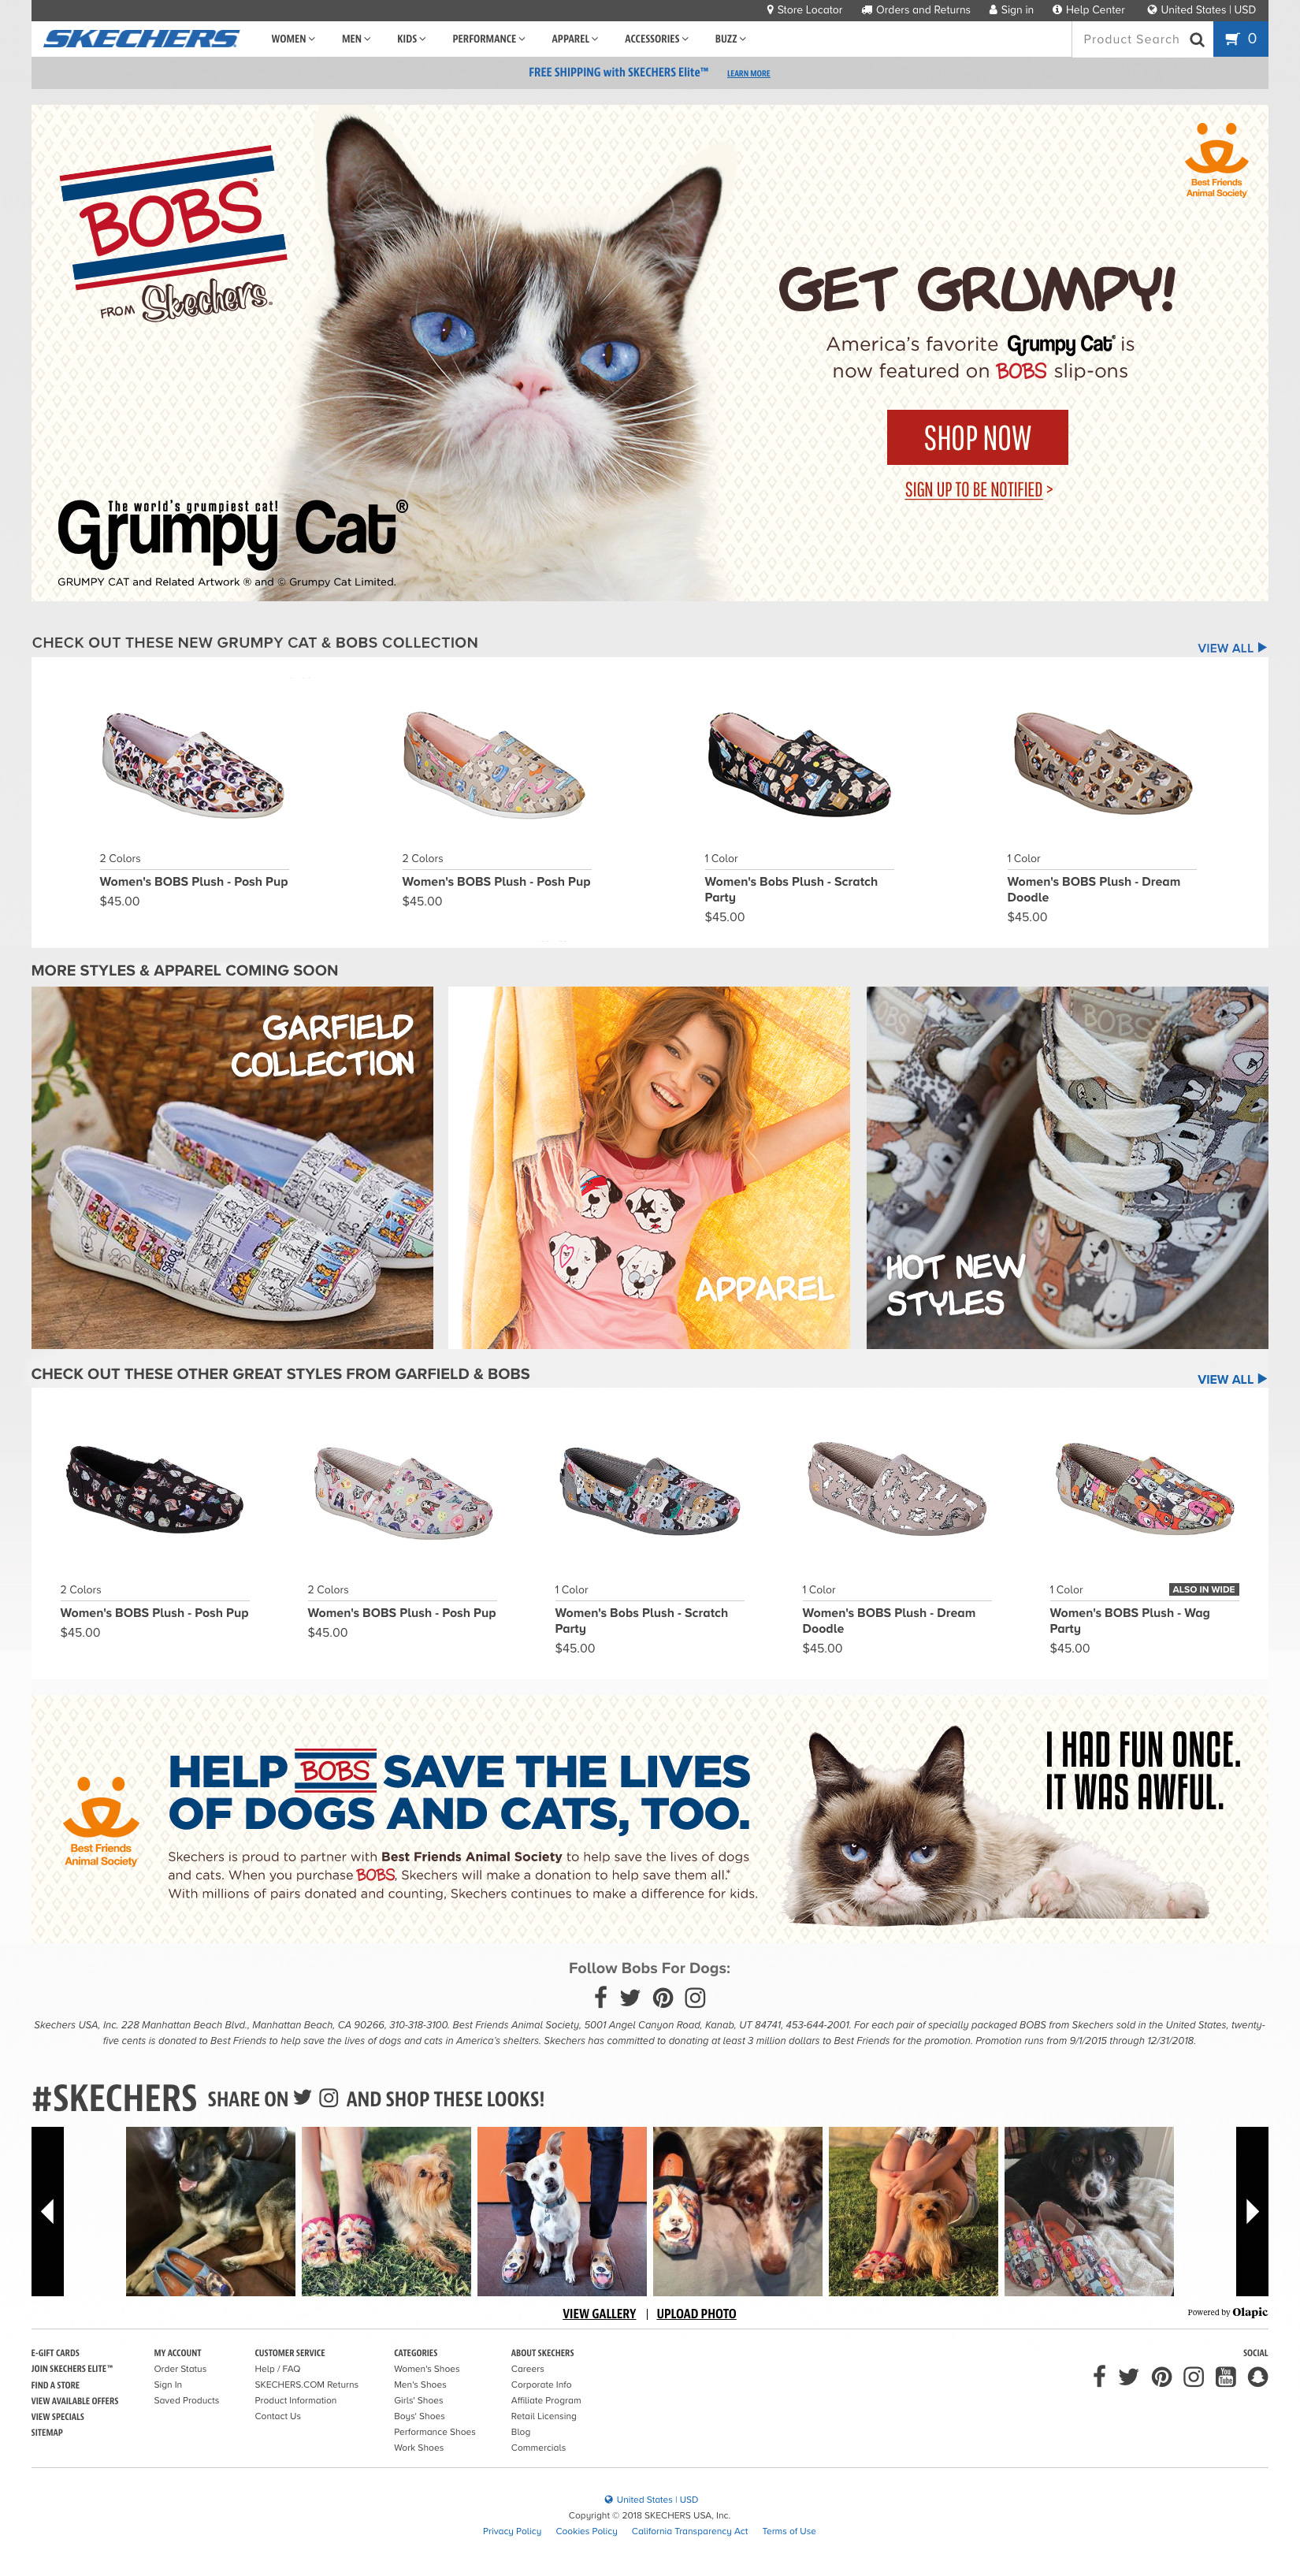 SKX32719-BOBS_X_GRUMPY_CAT_LANDING_PAGES_V2